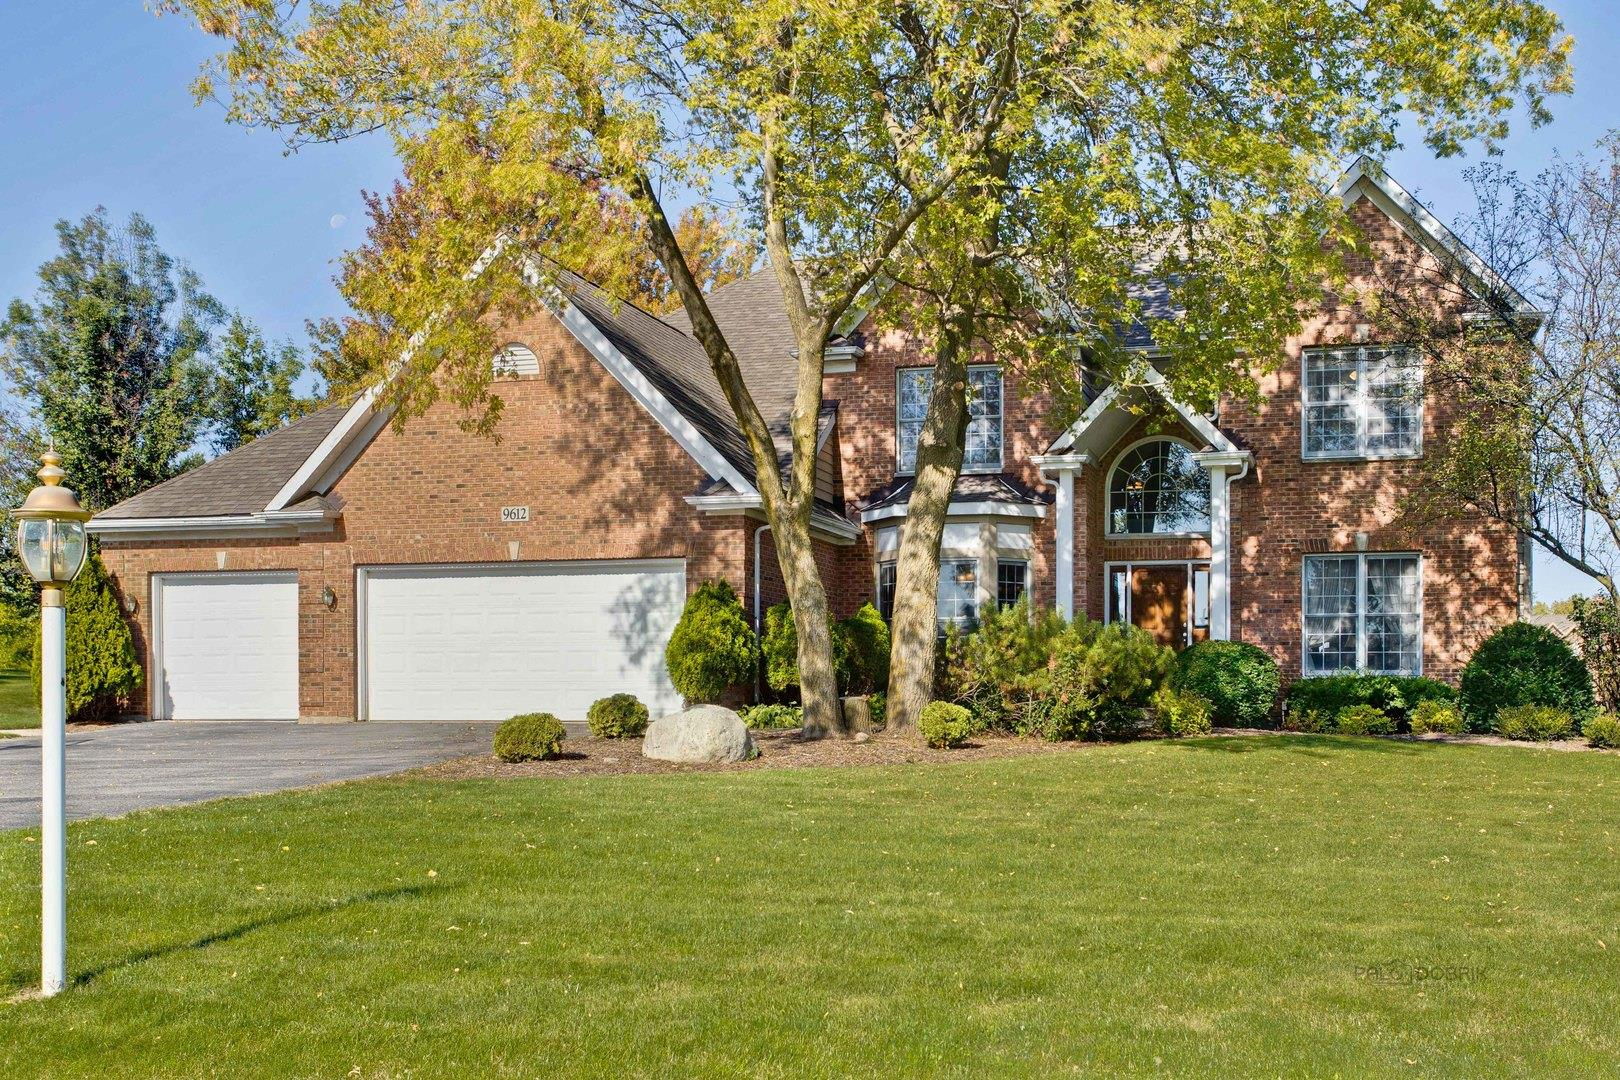 9612 S Muirfield Drive, Lakewood, IL 60014 - #: 10895844